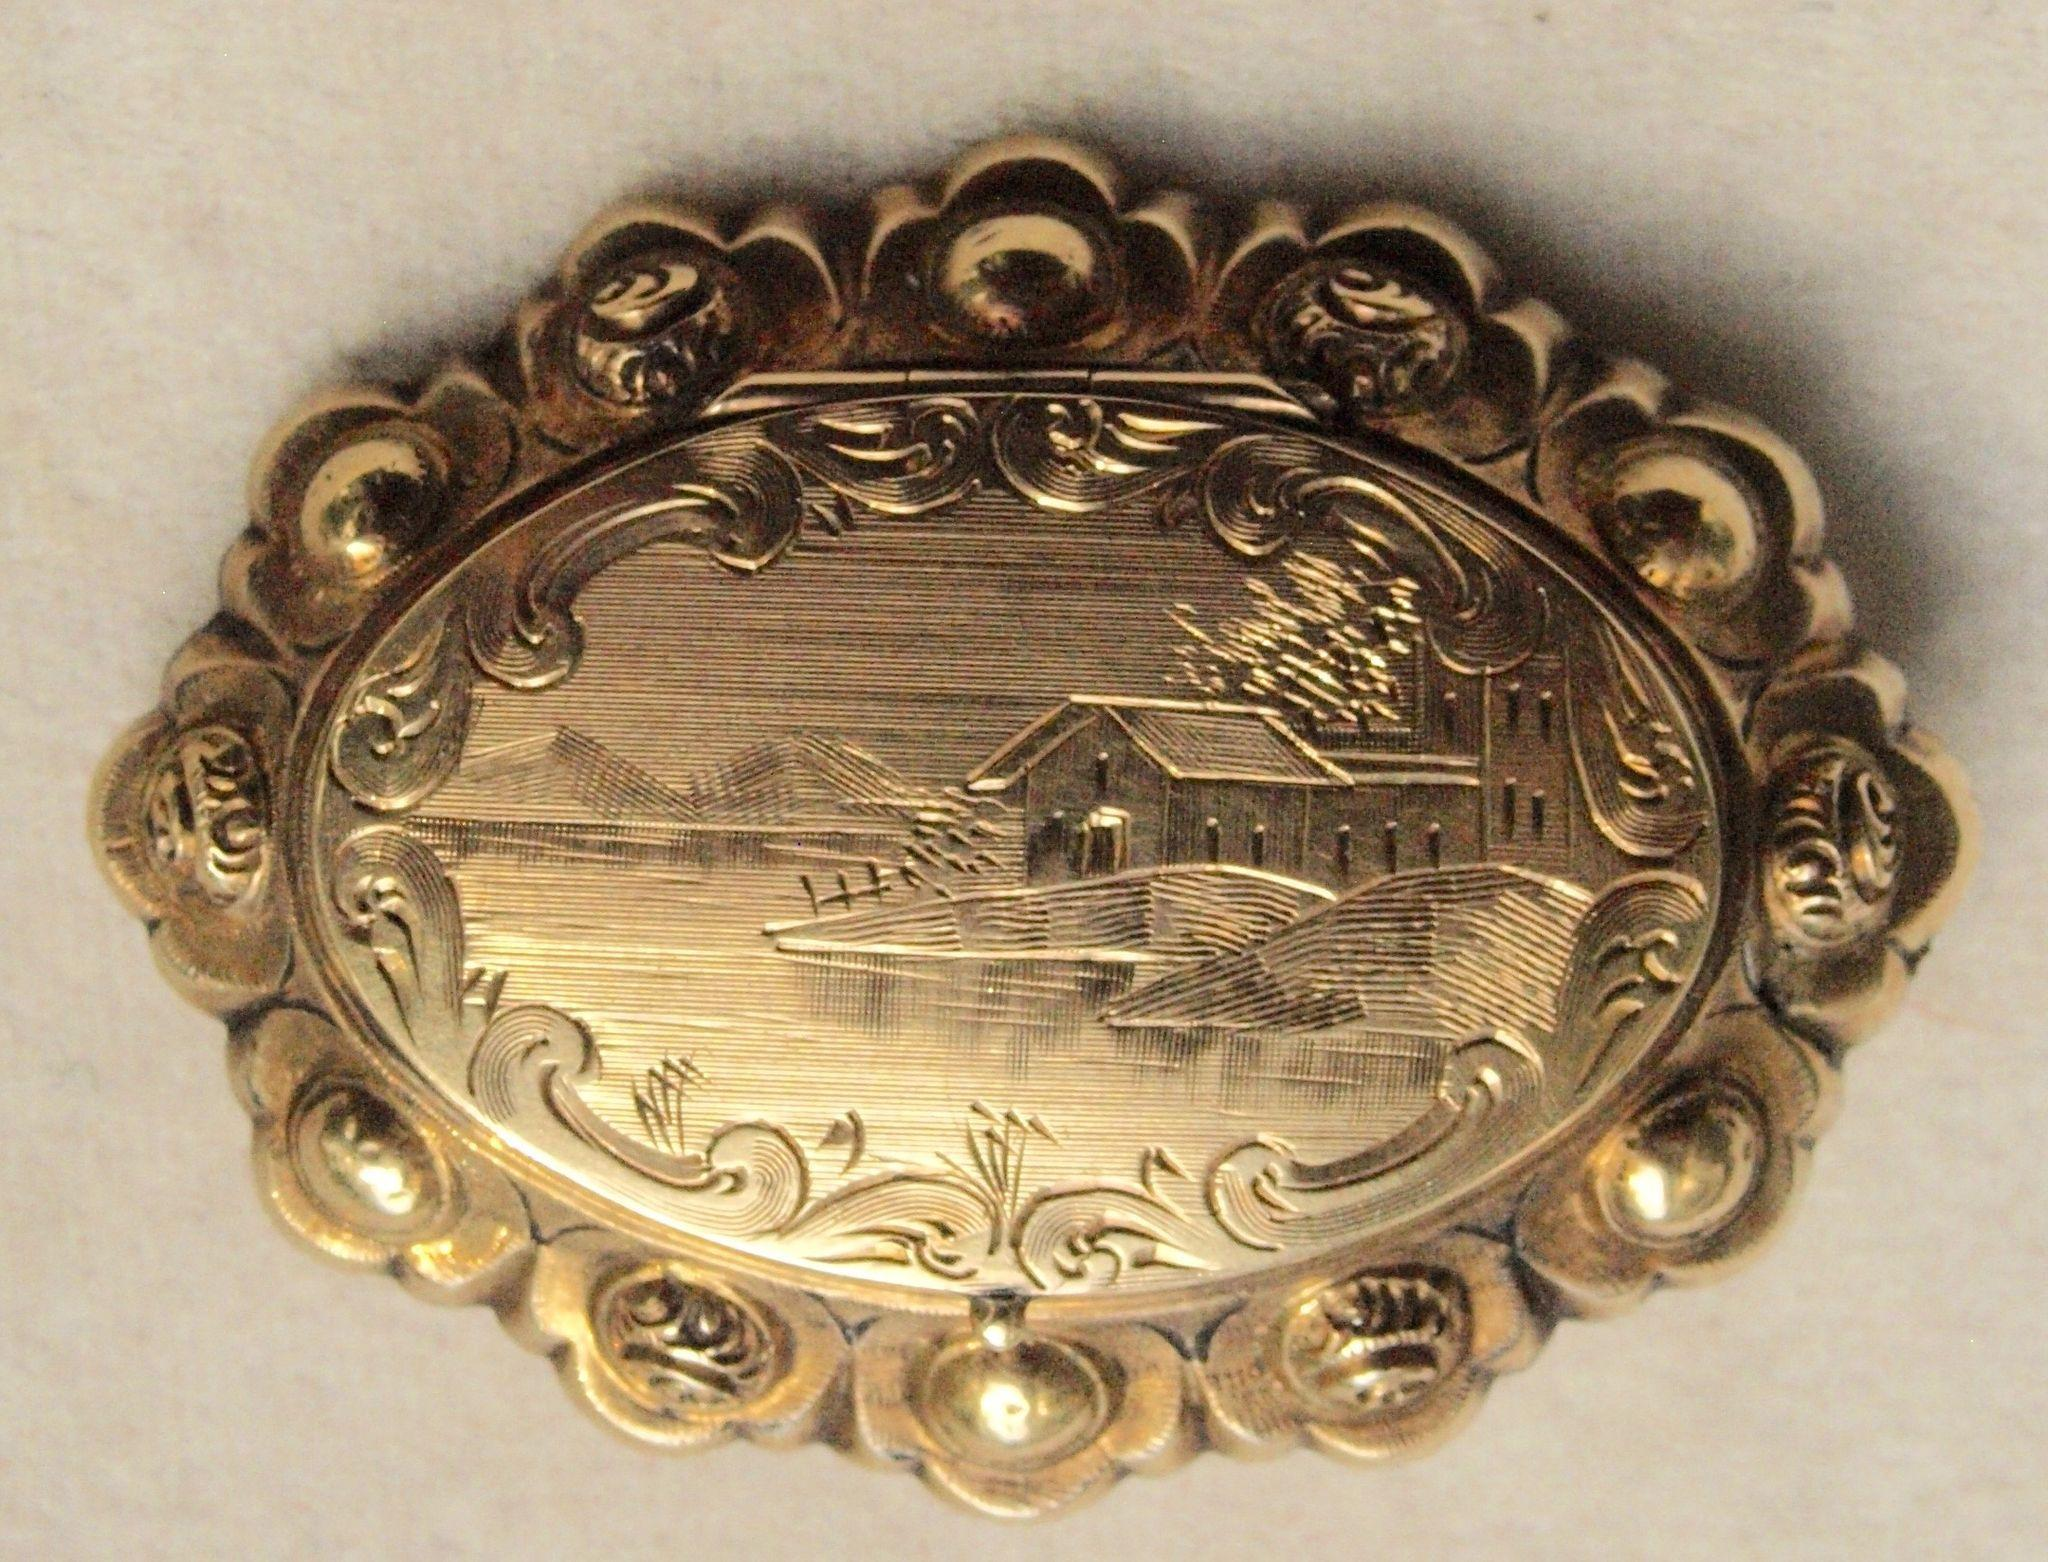 Civil War Era 14k Locket Brooch